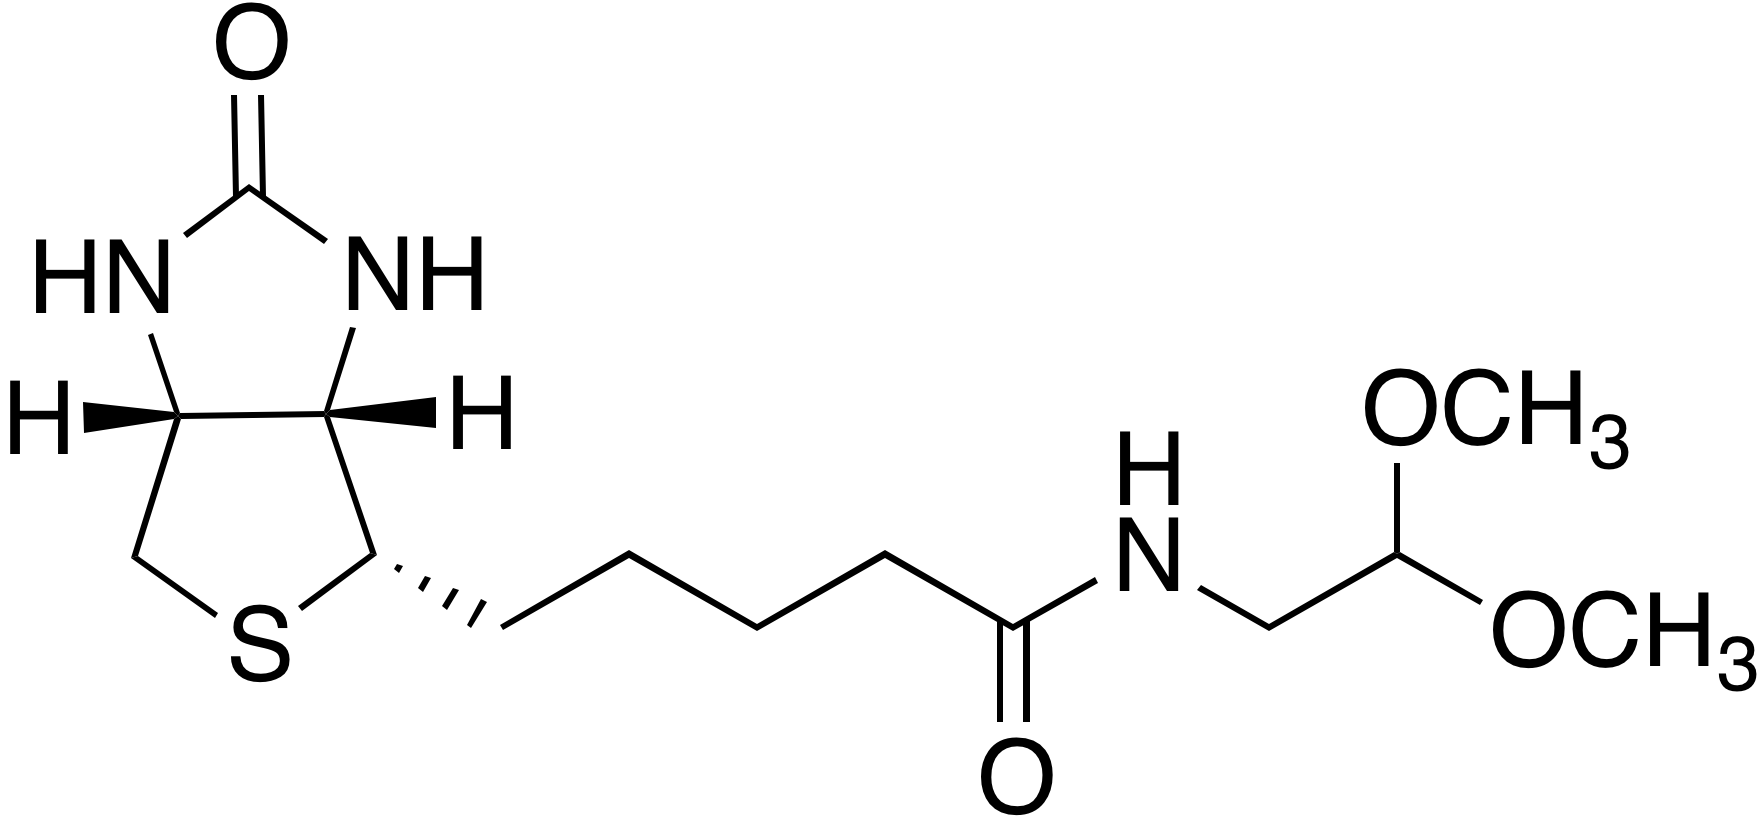 N-(2,2-Dimethoxyethyl)biotinamide